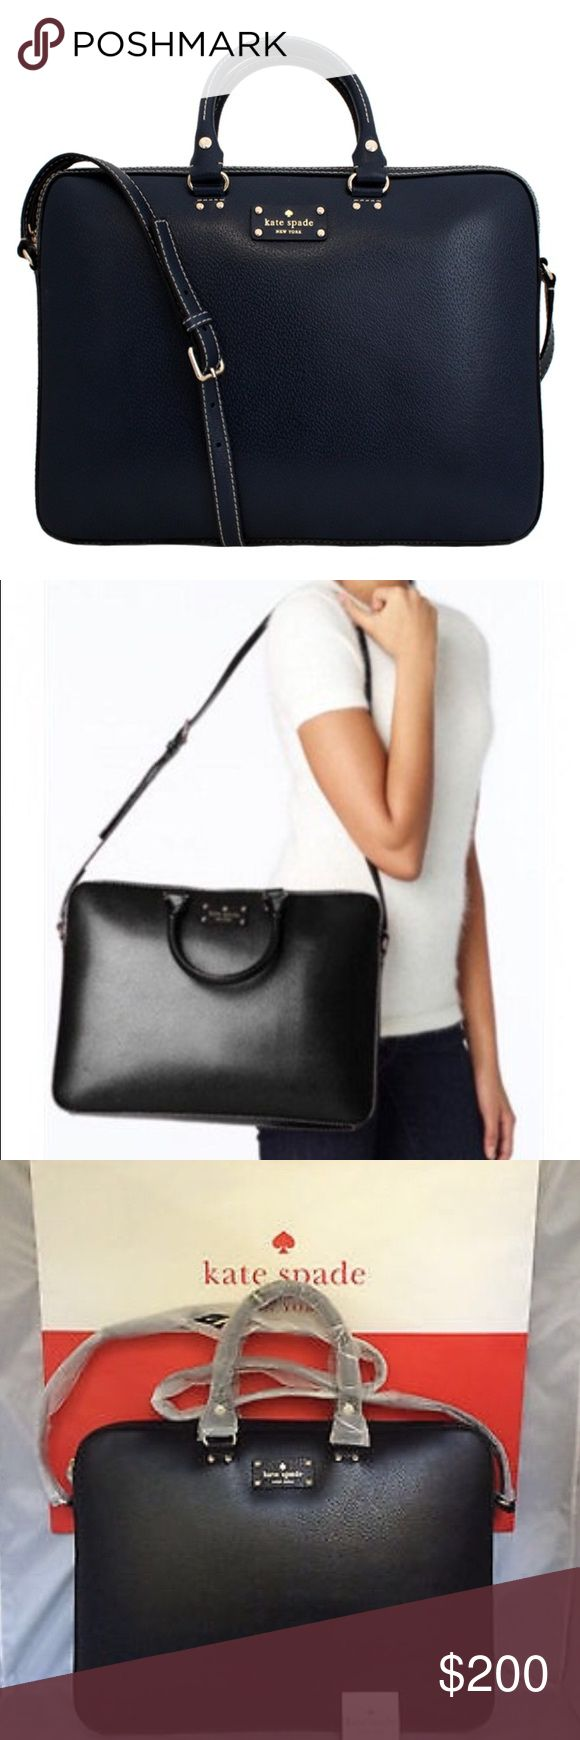 Kate Spade Leather Laptop Bag Amazing NWT laptop bag with extra room inside kate spade Bags